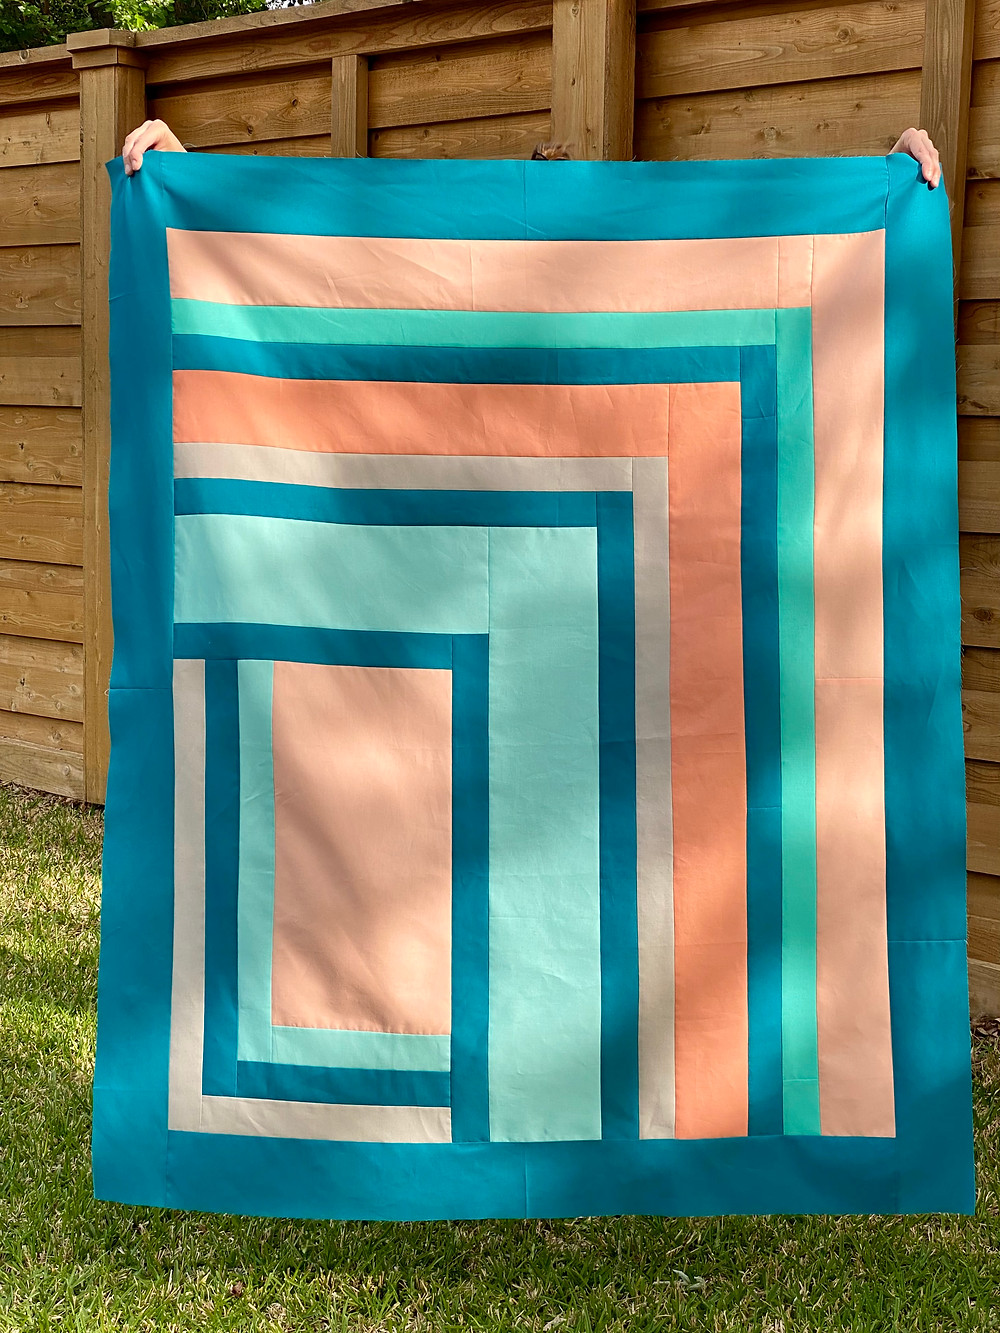 Beach inspired colors in cool hues of blue green and peach